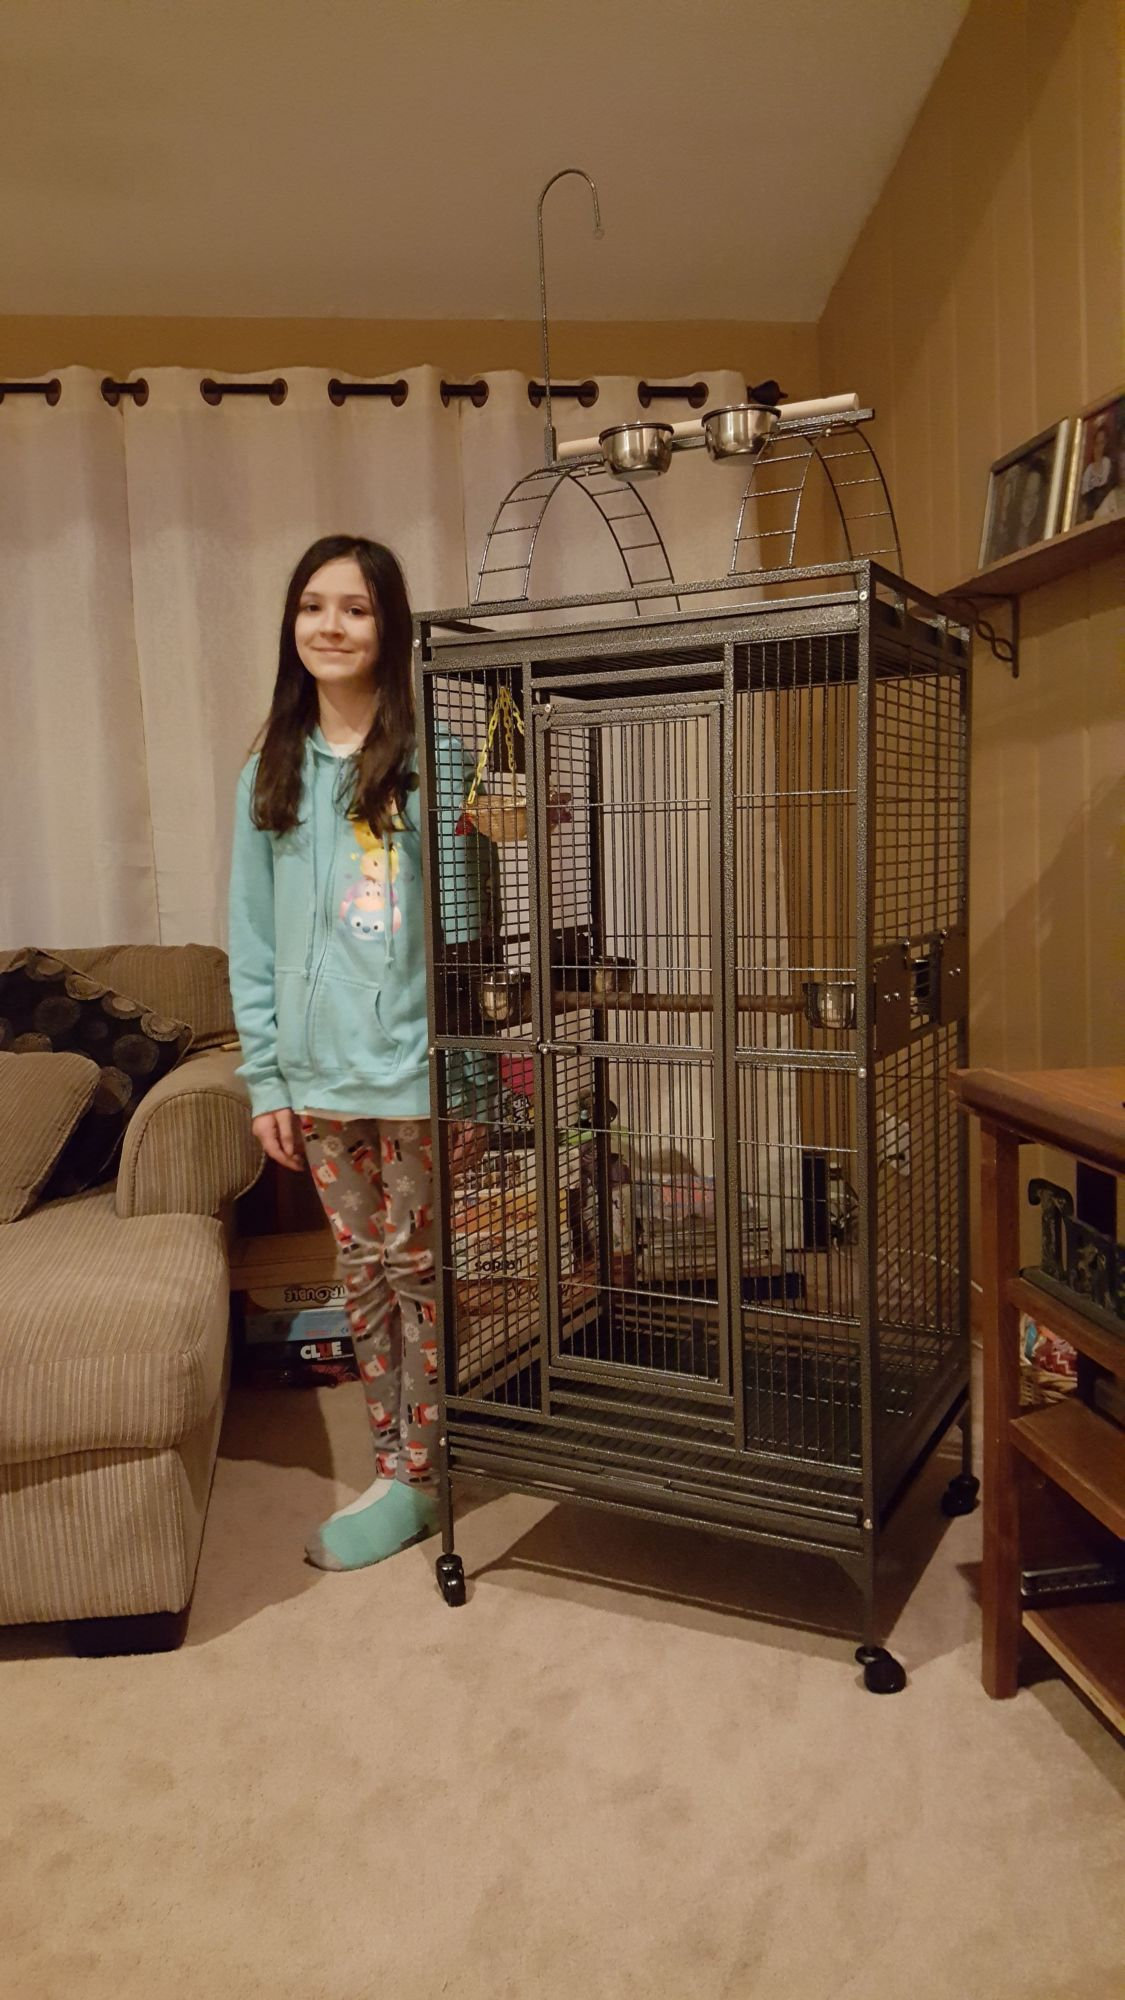 chicken pickin's photos in Hello! New to the indoor caged bird section.